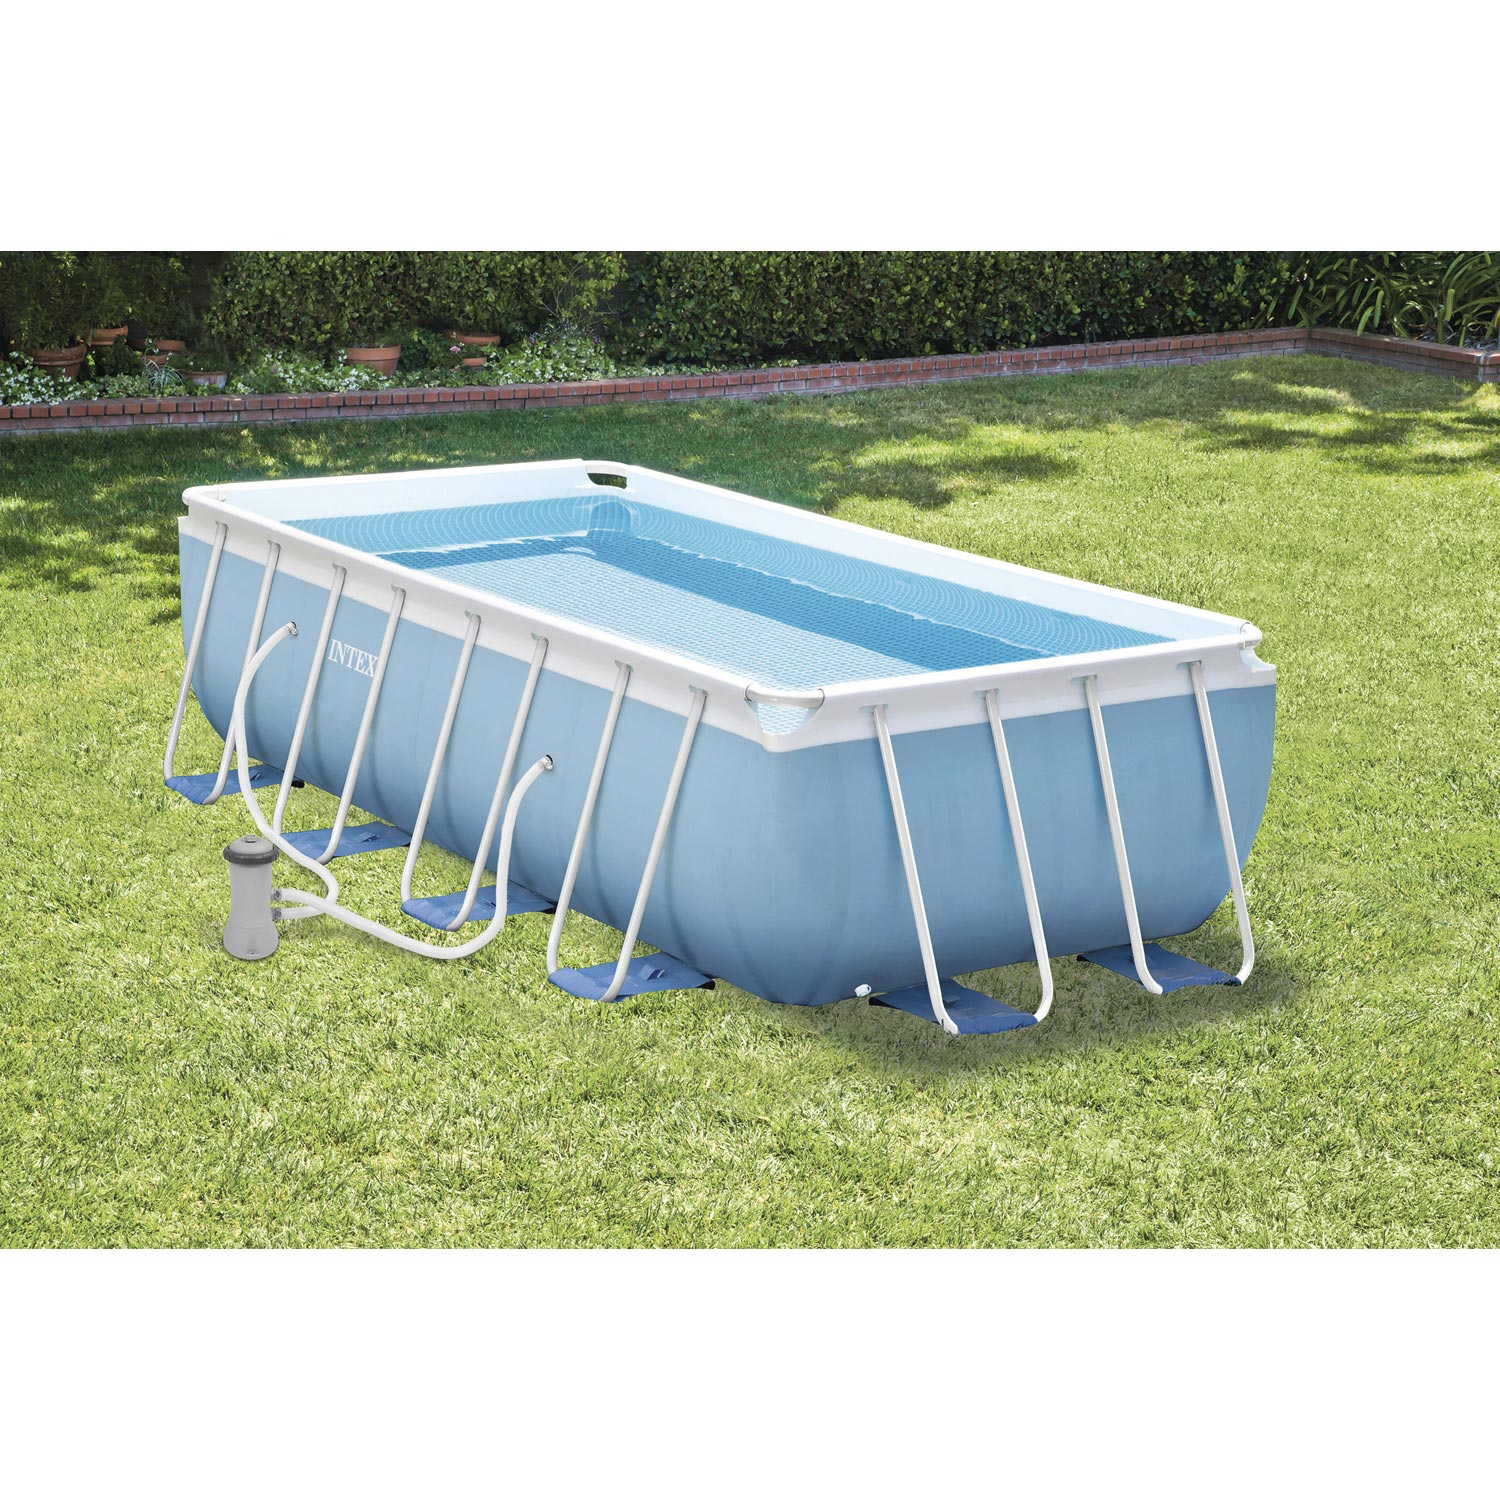 Piscine hors sol autoportante tubulaire prism frame intex for Piscine hors sol